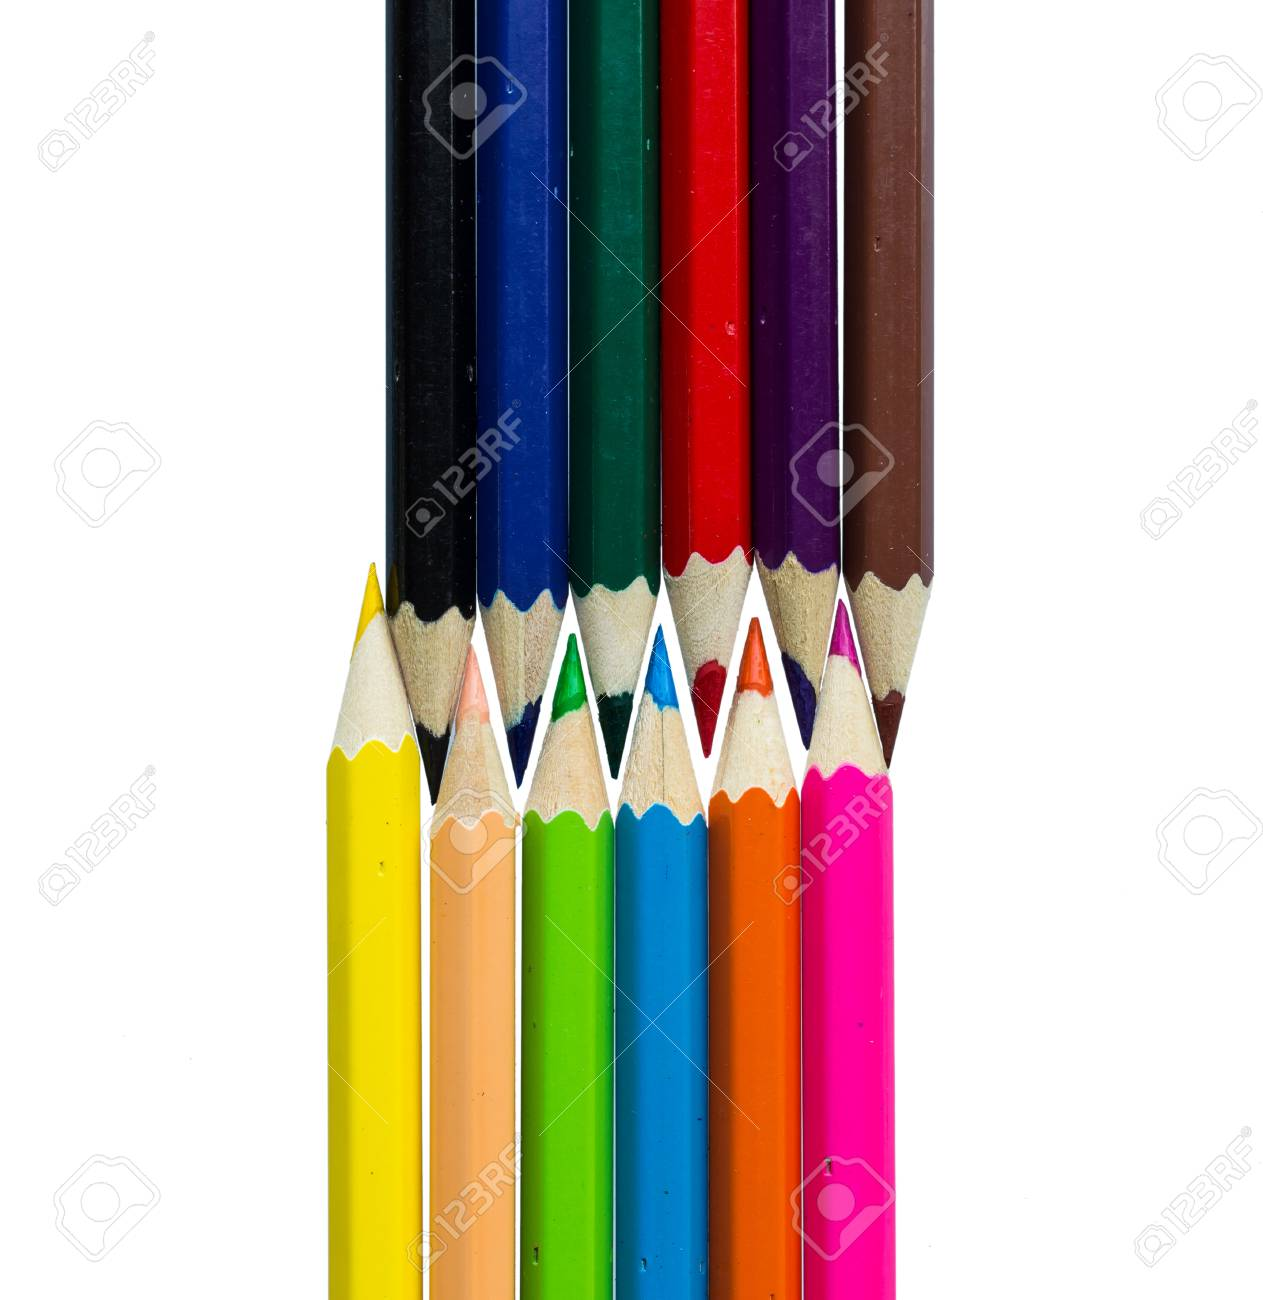 Drawing supplies: assorted color pencils, on white background